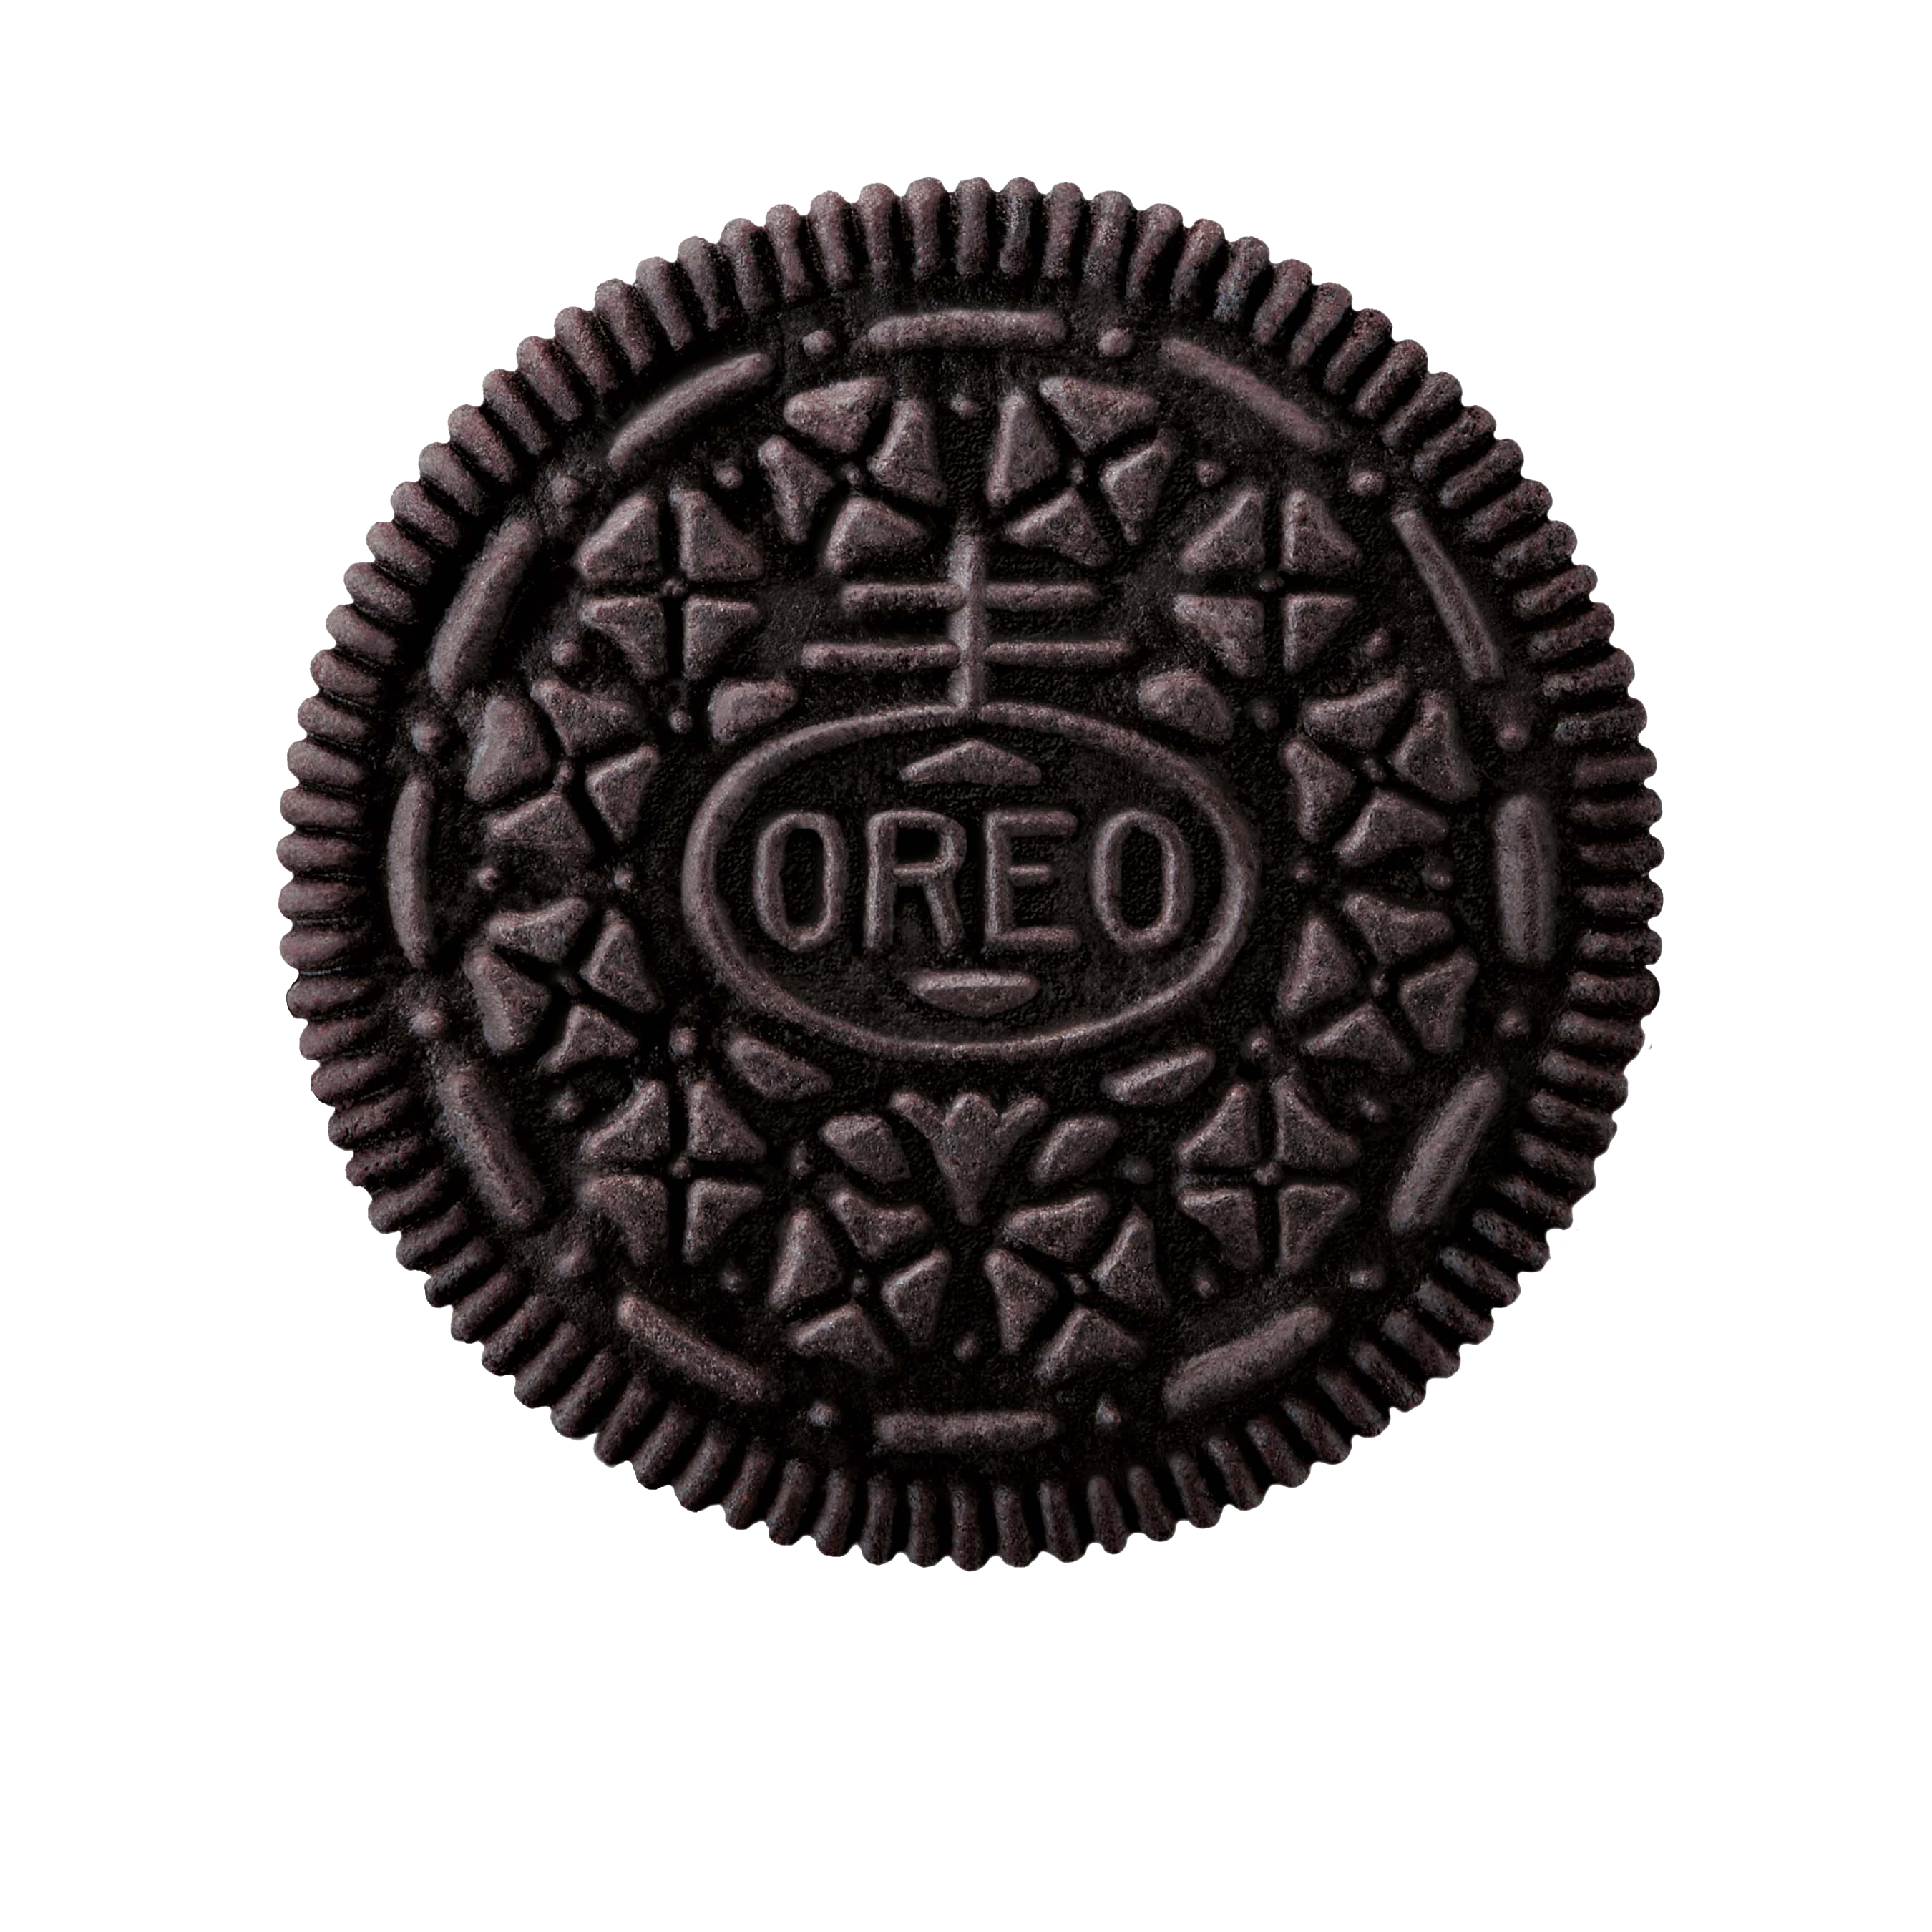 png transparent download Android Oreo Chocolate brownie Stuffing Sticker